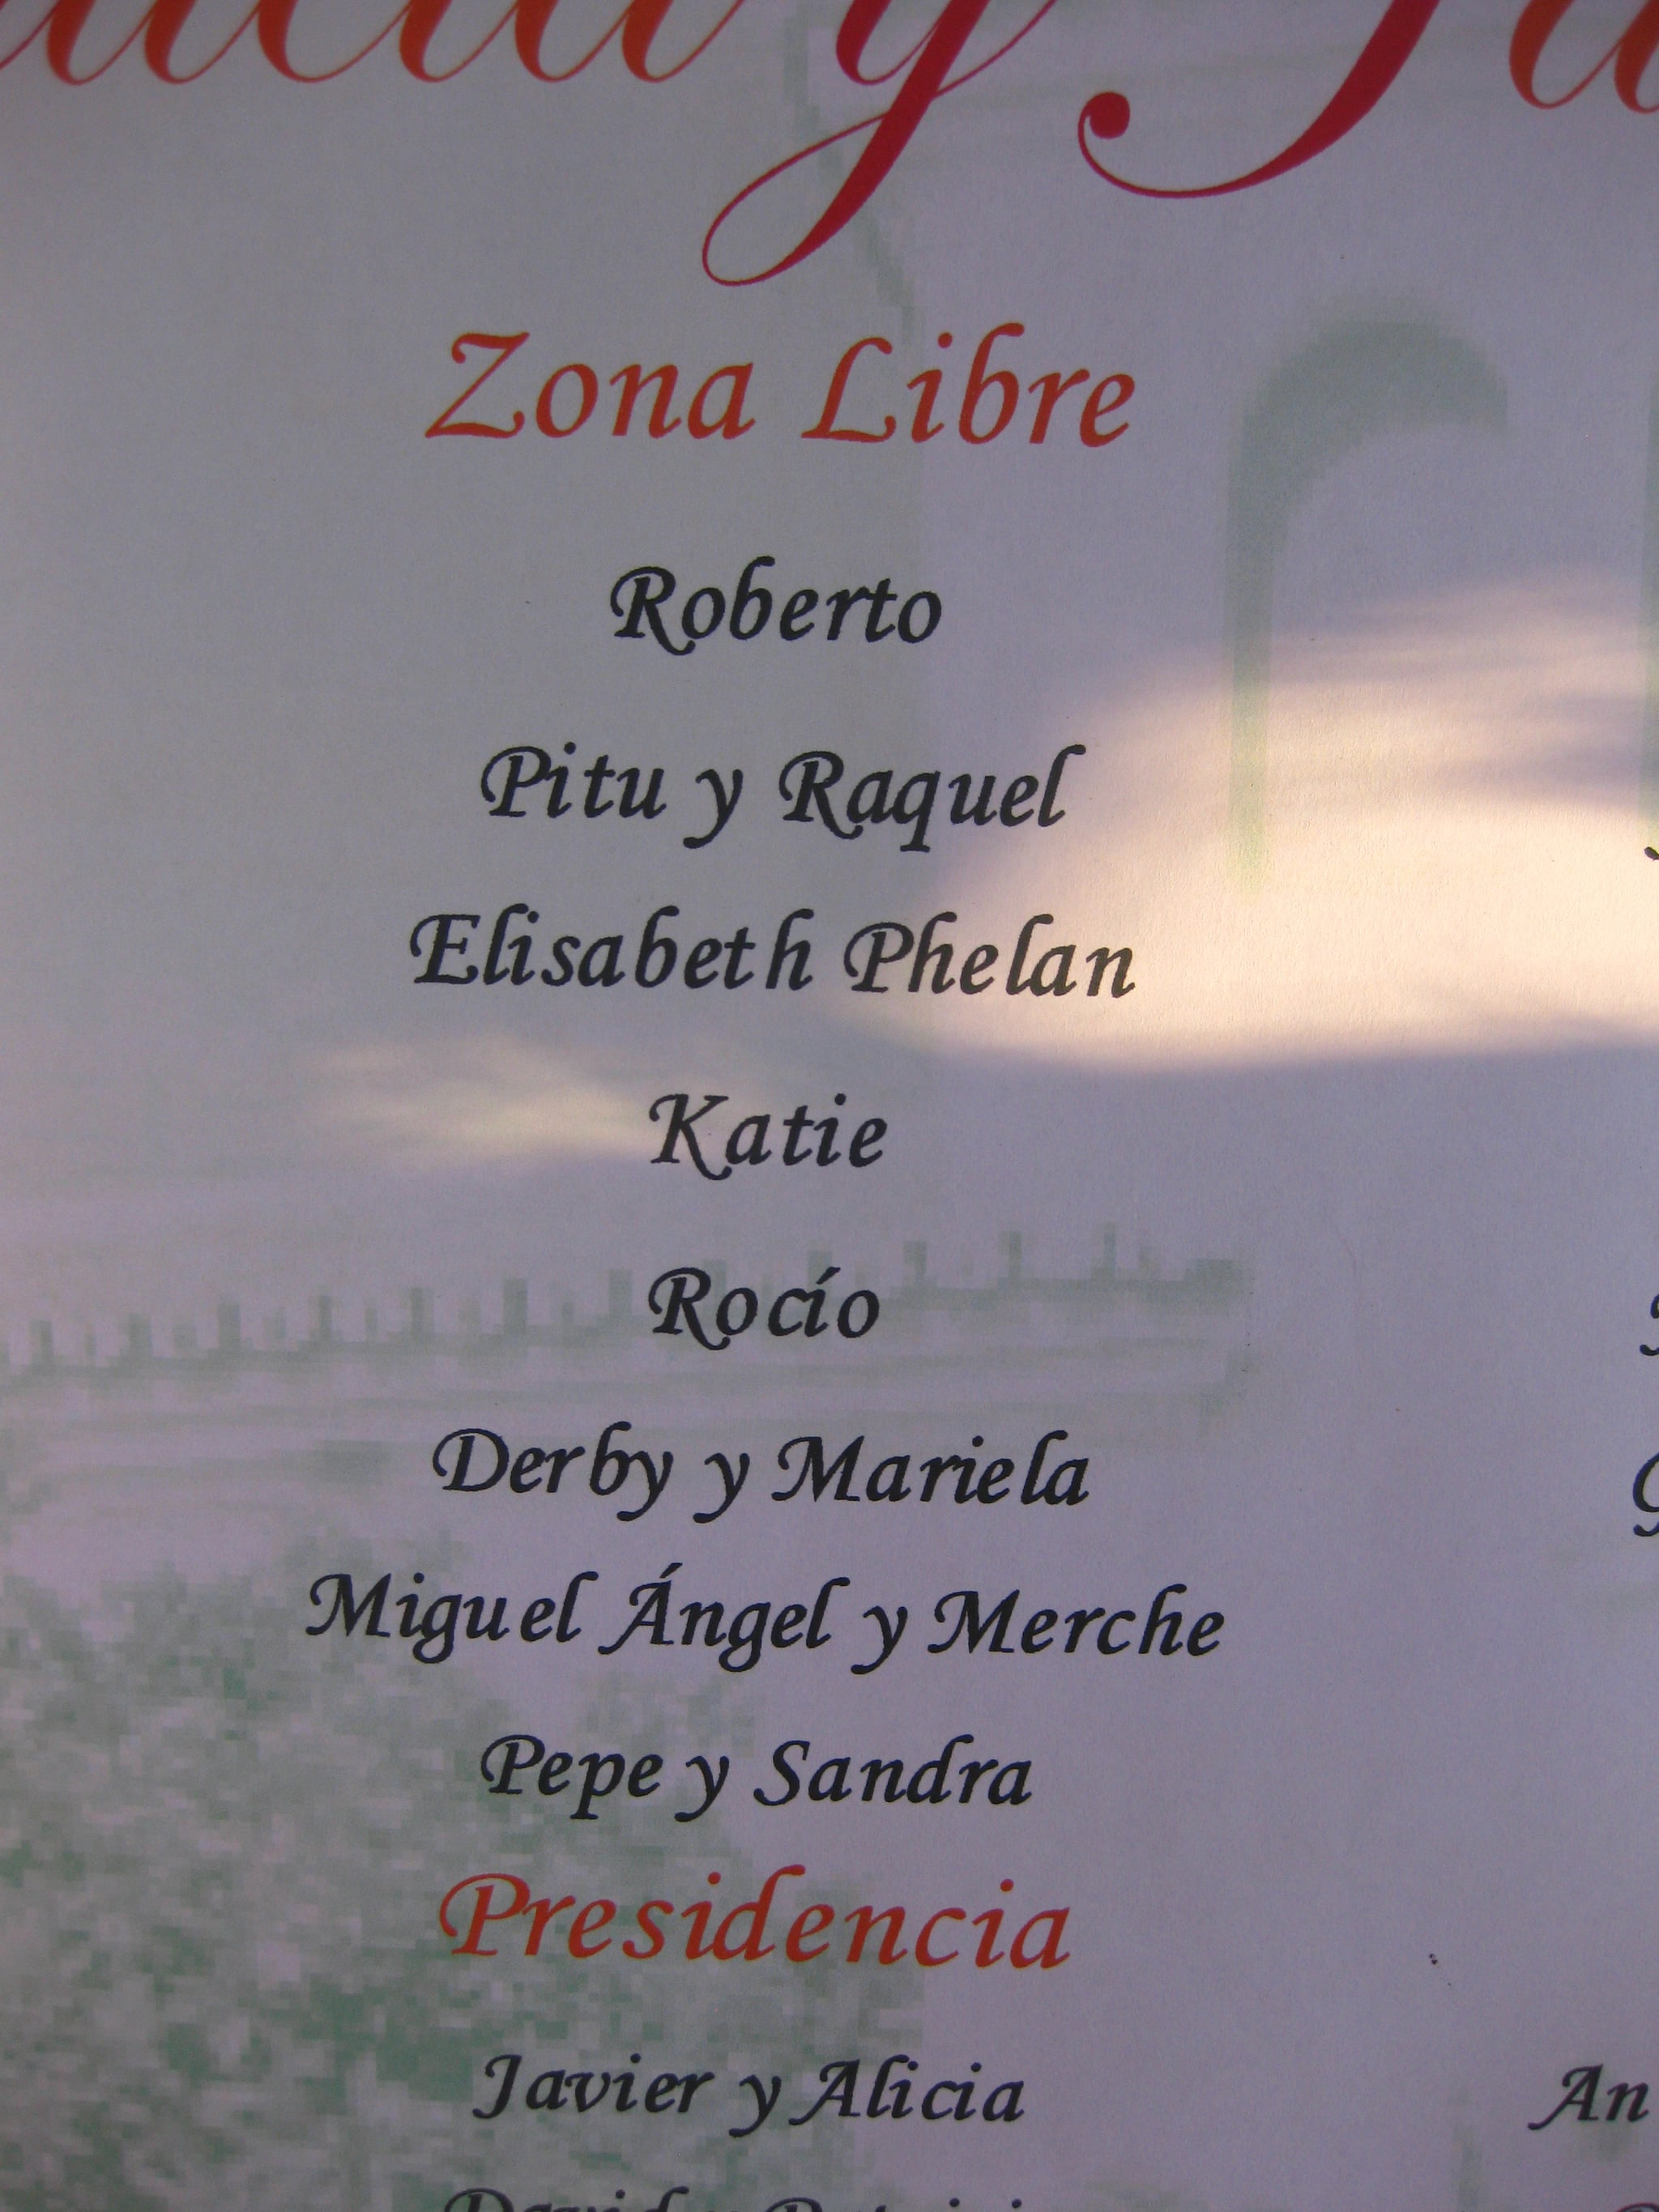 I'm so well known in Cordoba that no last name is needed!